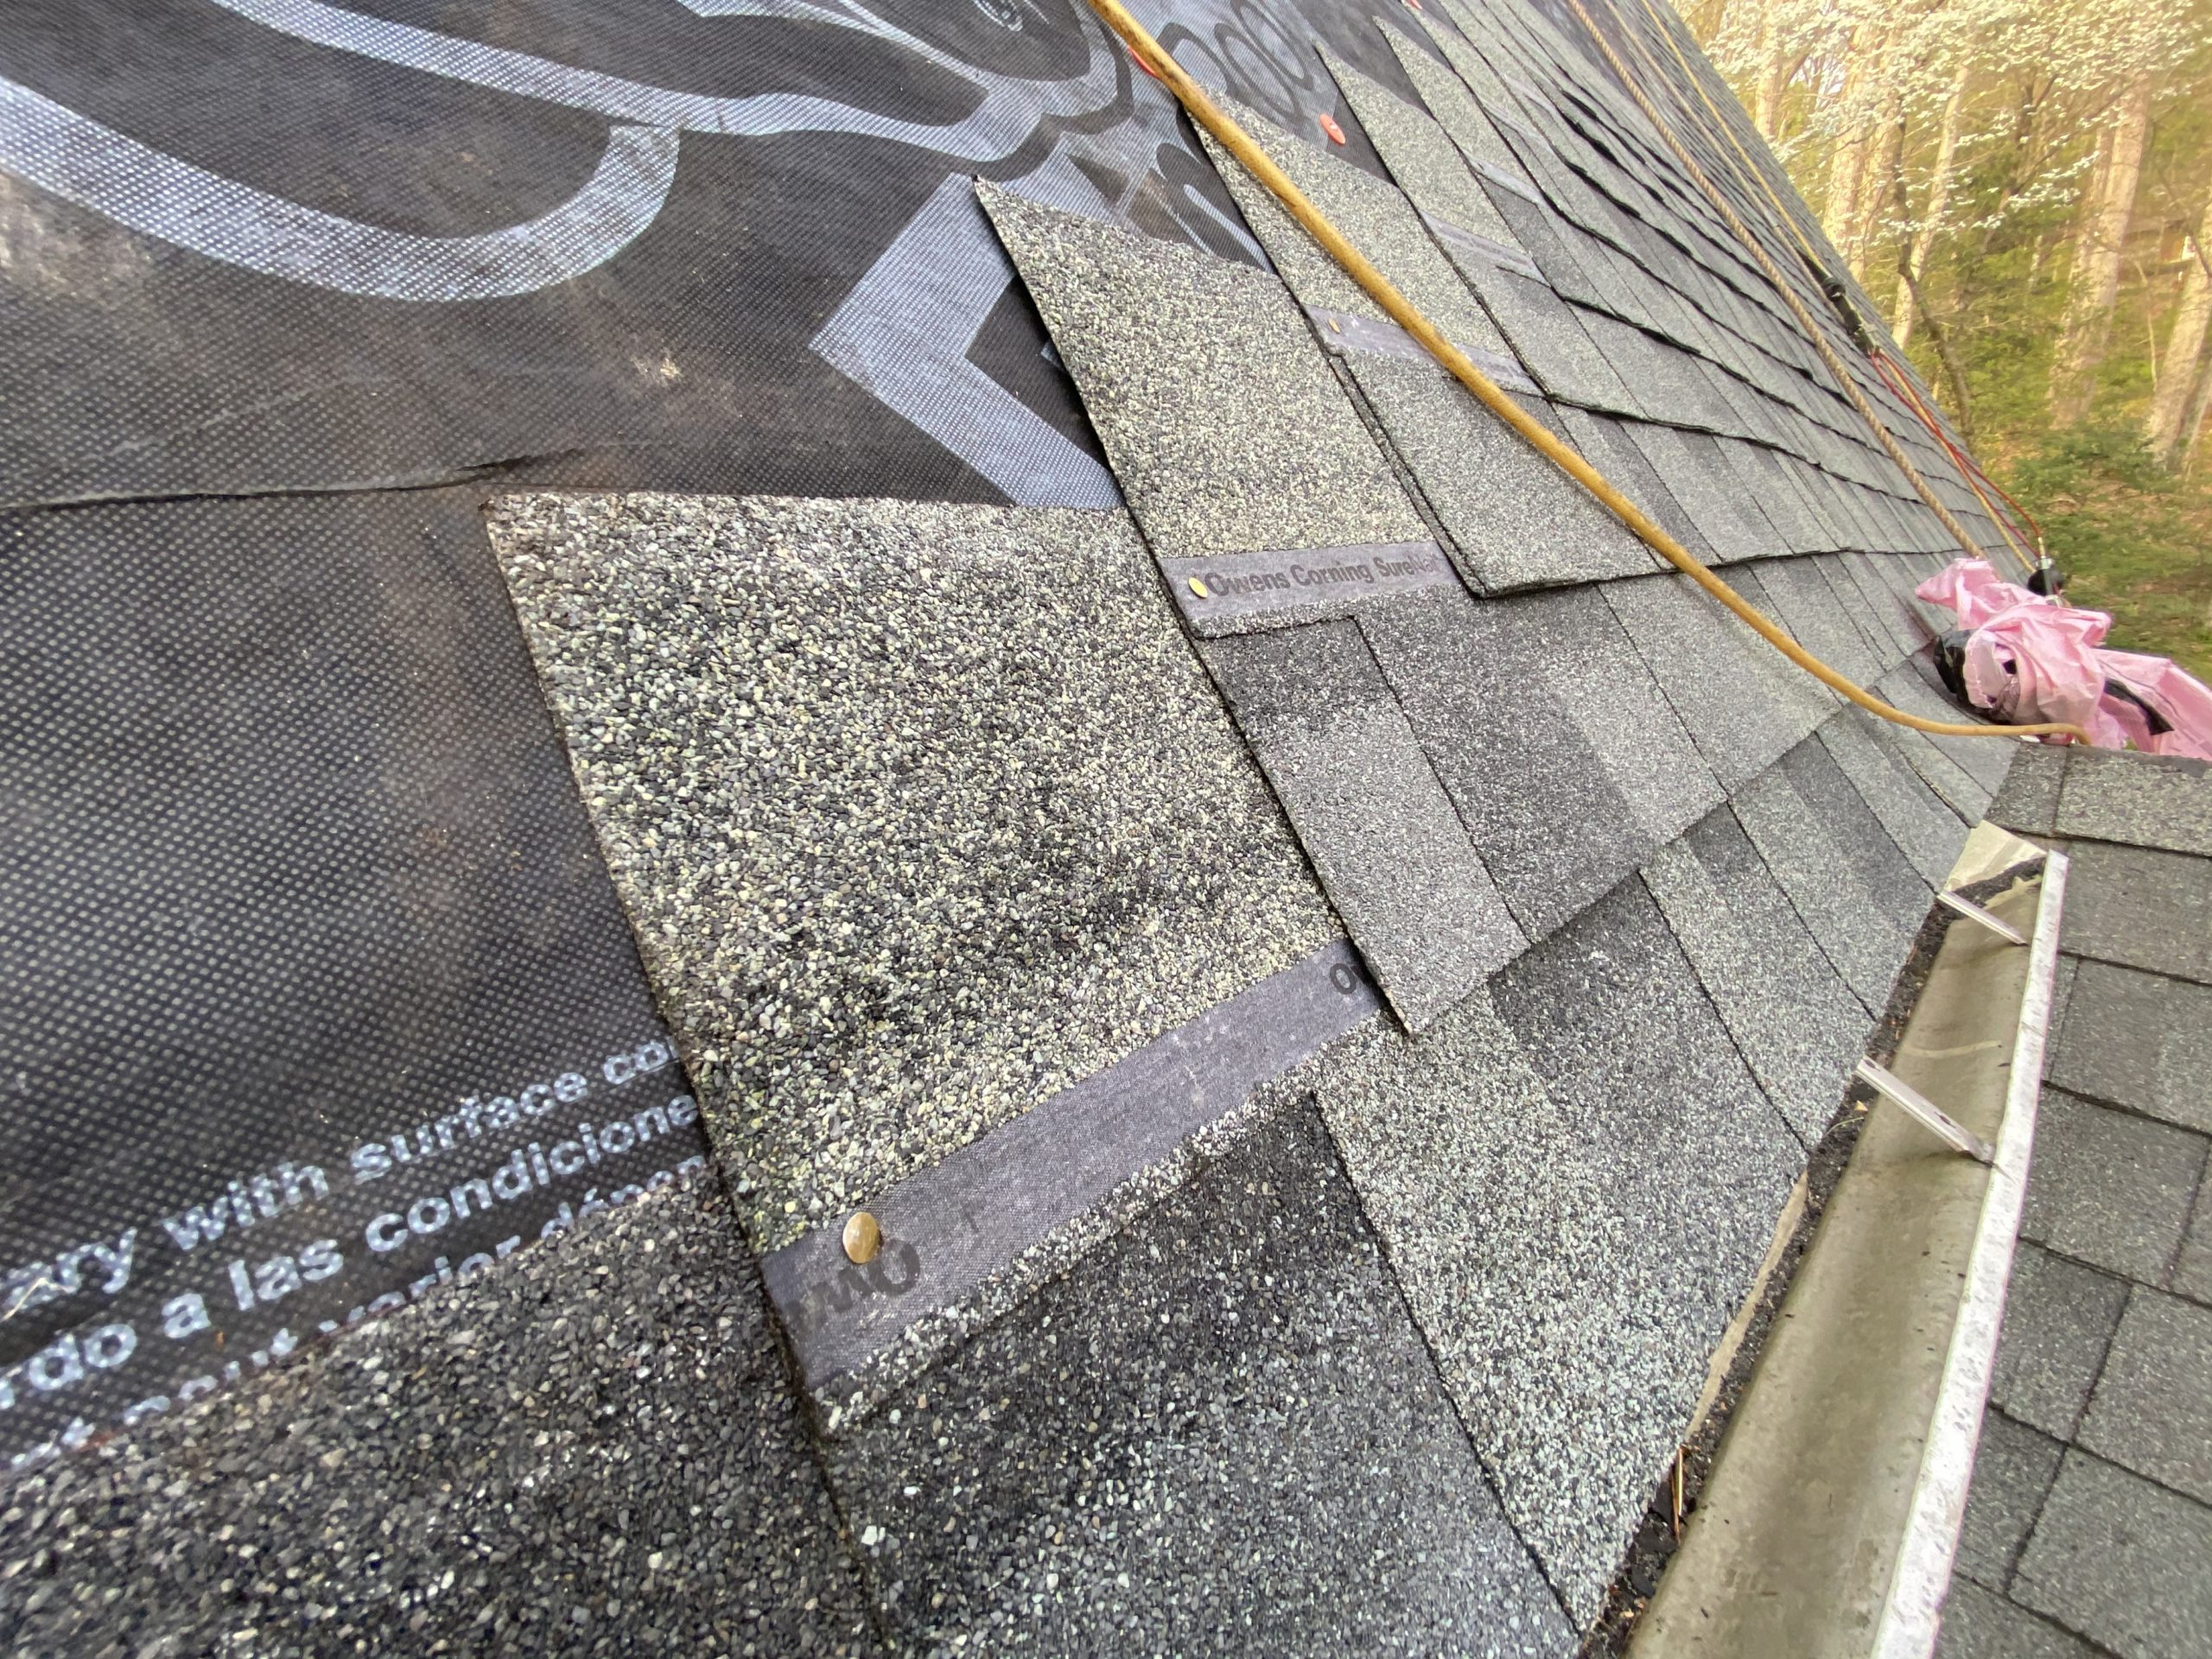 A closer look on the proper installation of the shingles.